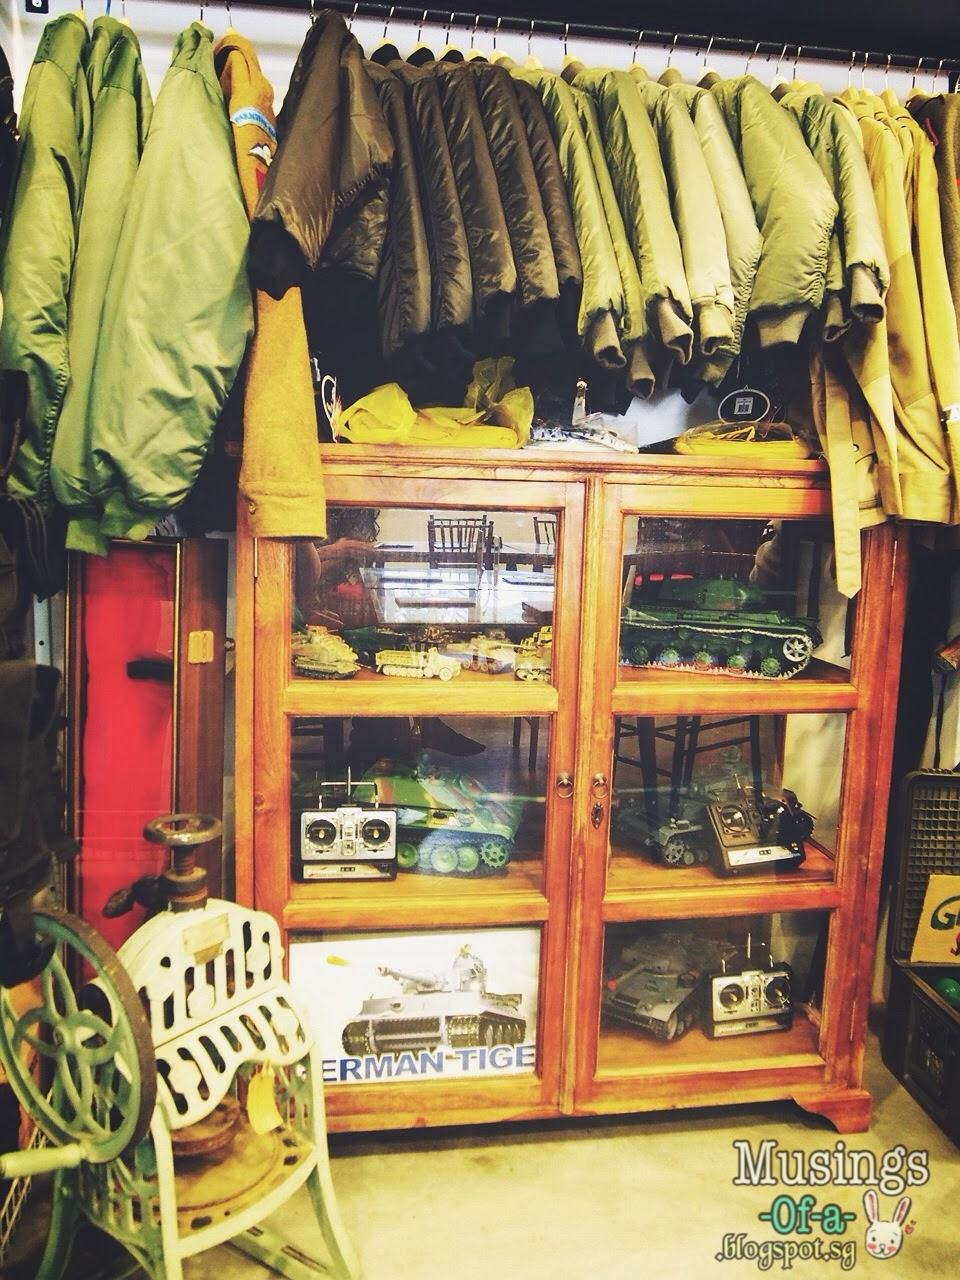 Retro Wartime Military Uniforms and Models of Tankers displayed in a wooden cabinet